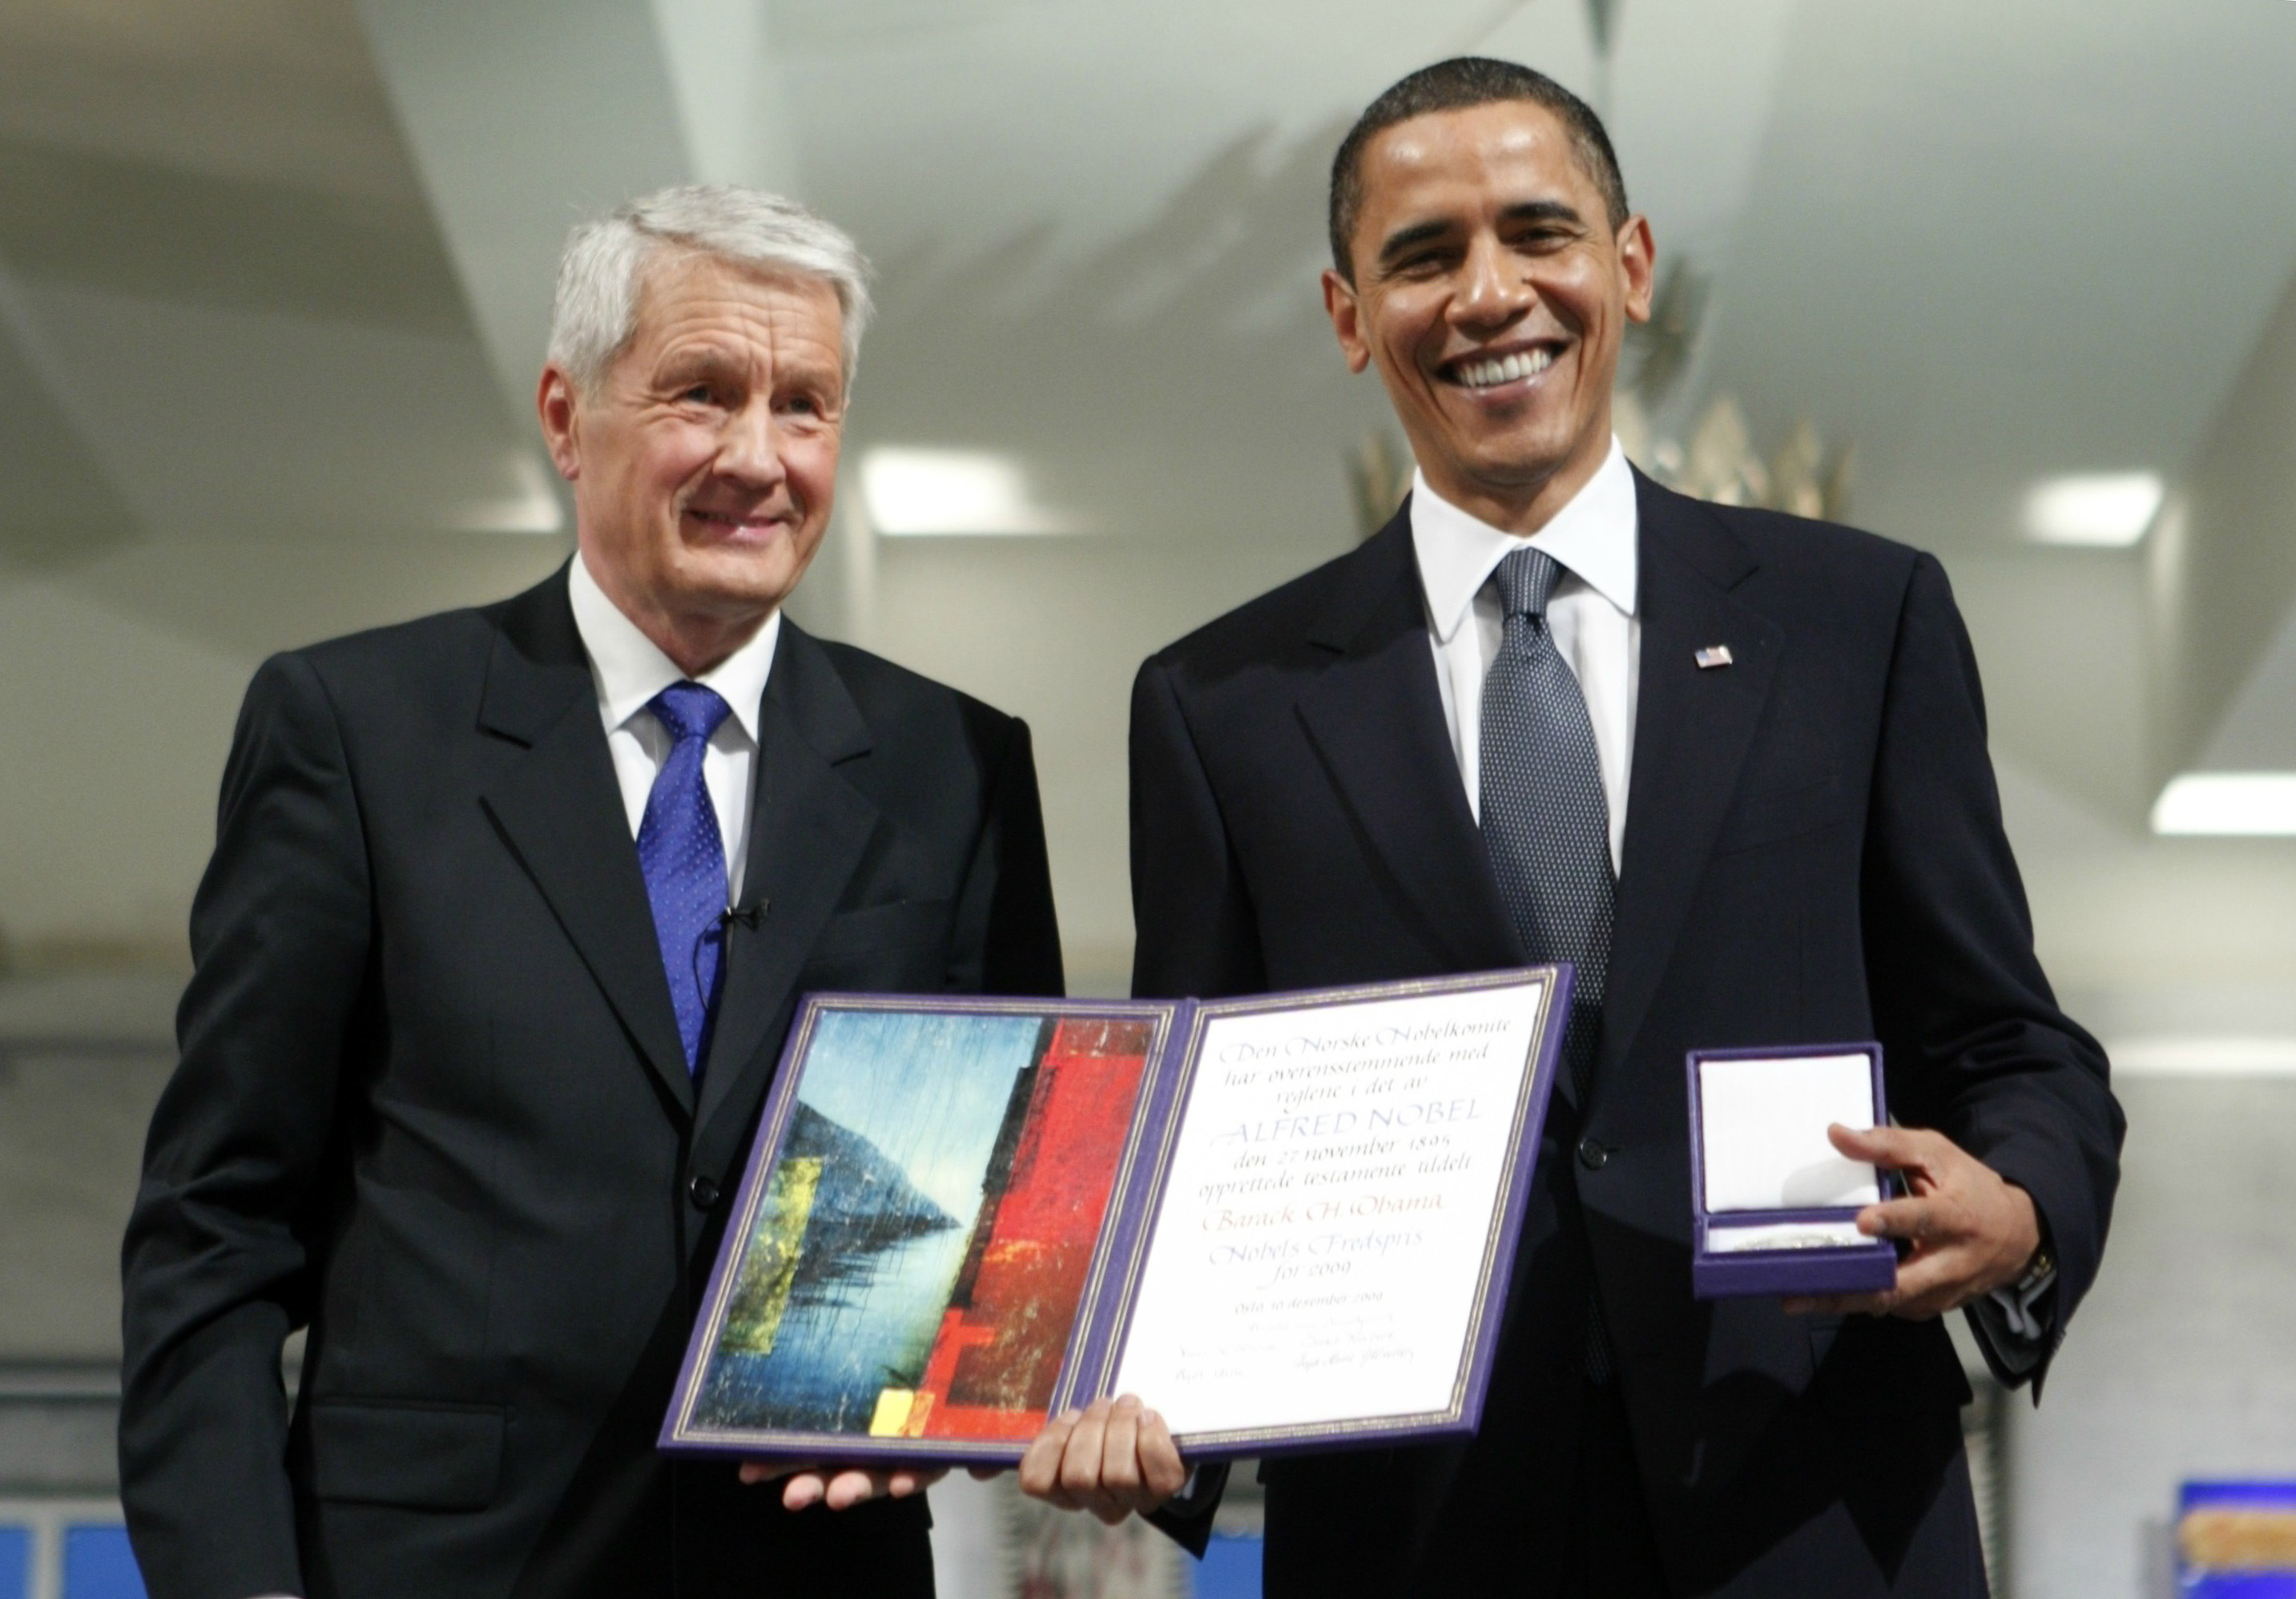 President-Obama-poses-with-his-nobel-medal-and-certificate-while-standing-by-Nobel-Chairman-Thorbjoern-Jagland.-ReutersBjorn-Sigurdson